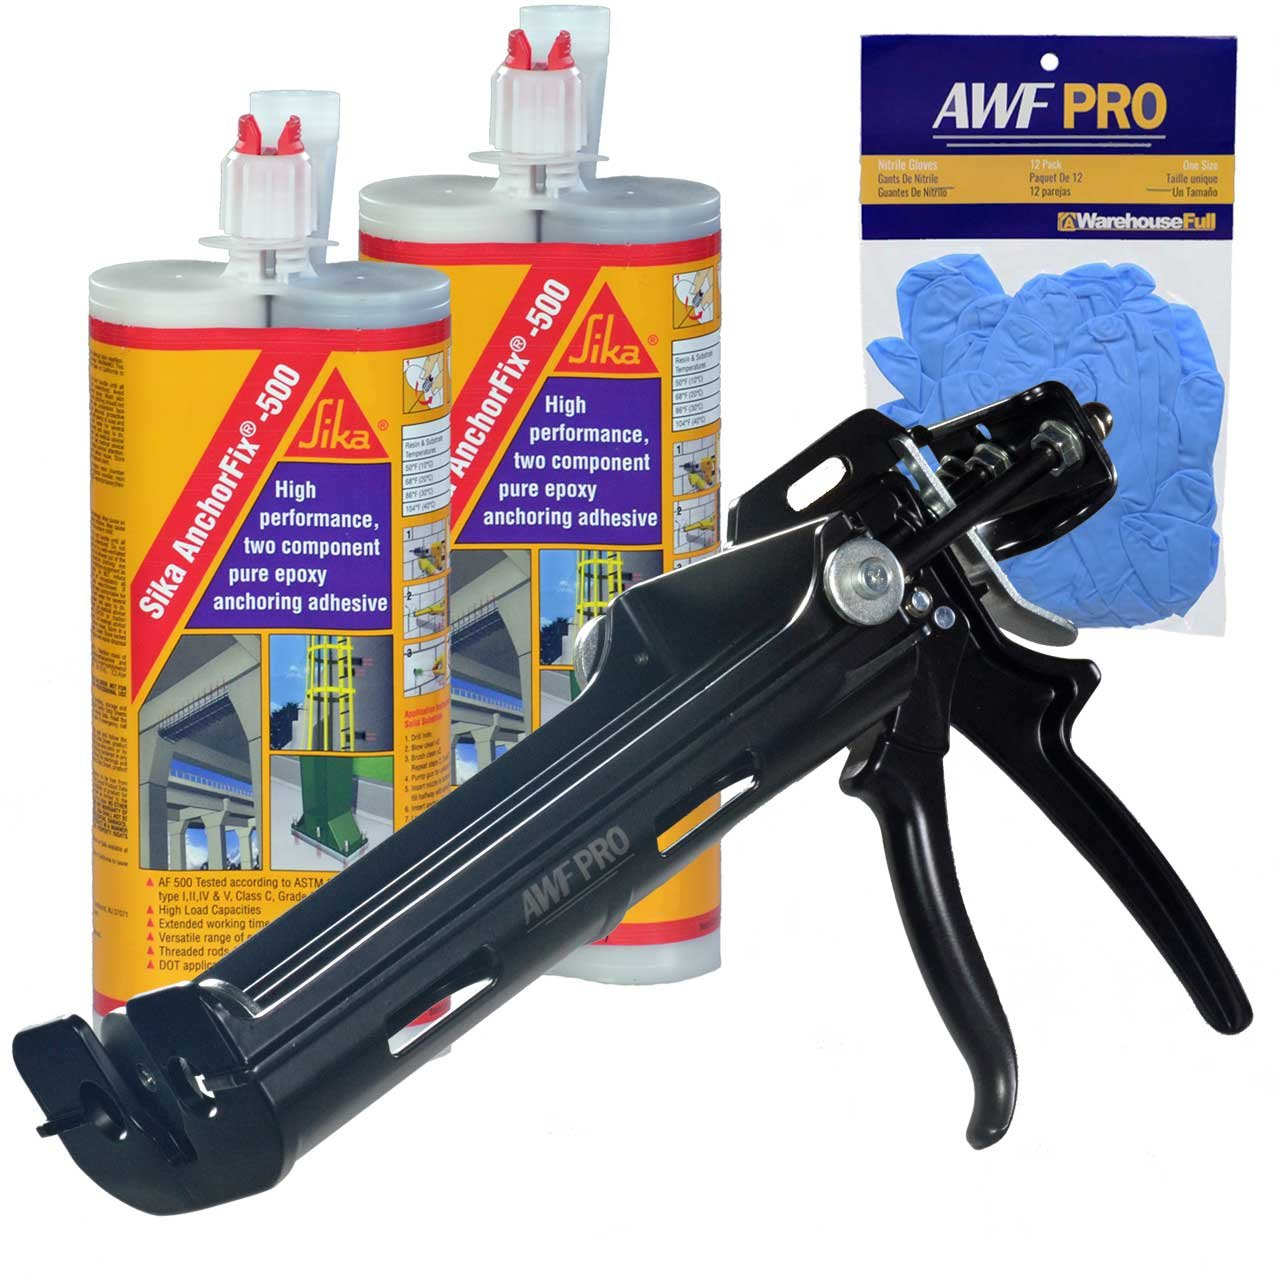 Epoxy Adhesive Applicator, 22 oz. Dual Cartridge Capacity, 25:1 Thrust, AWF Pro with 2 Cartridges, Sika AnchorFix 500: 20 oz Two Component Epoxy, High Performance, Concrete Anchoring System